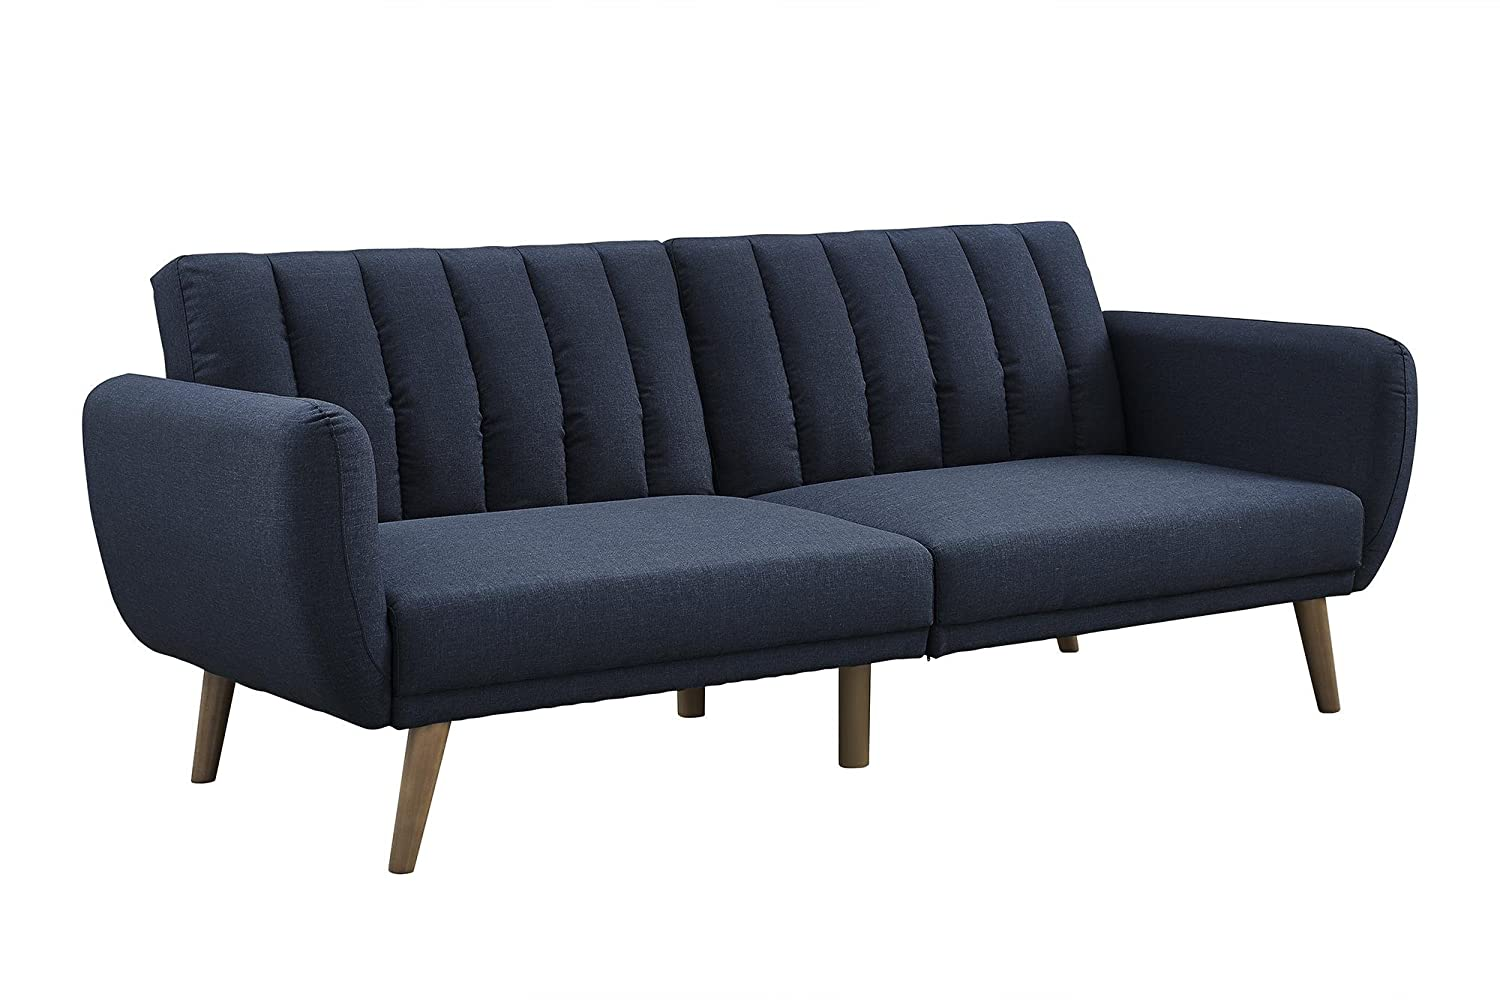 Medium image of amazon    novogratz brittany sofa futon premium linen upholstery and wooden legs blue linen  kitchen  u0026 dining